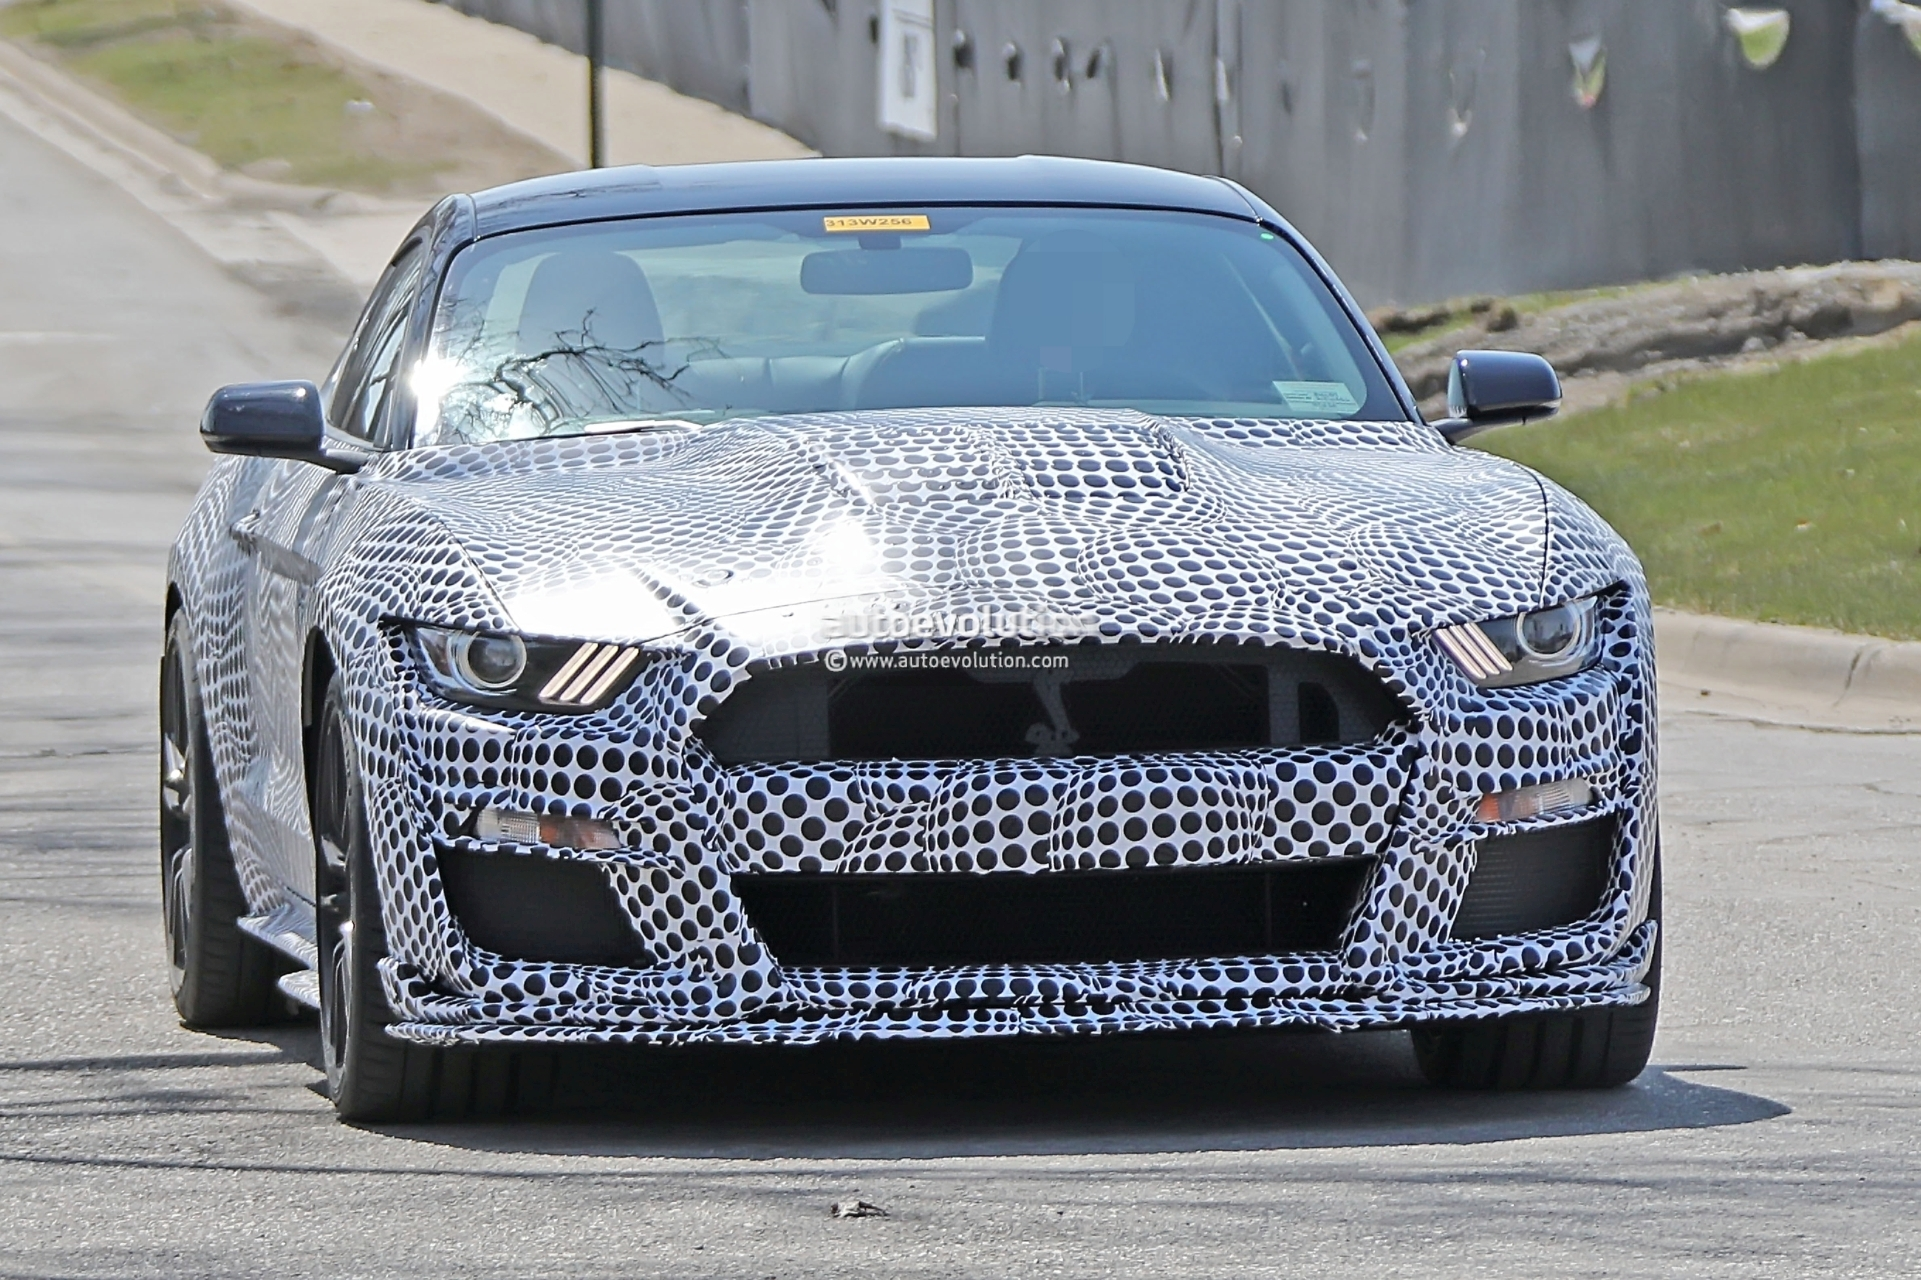 Spyshots: New Ford Mustang Shelby GT500 Shows